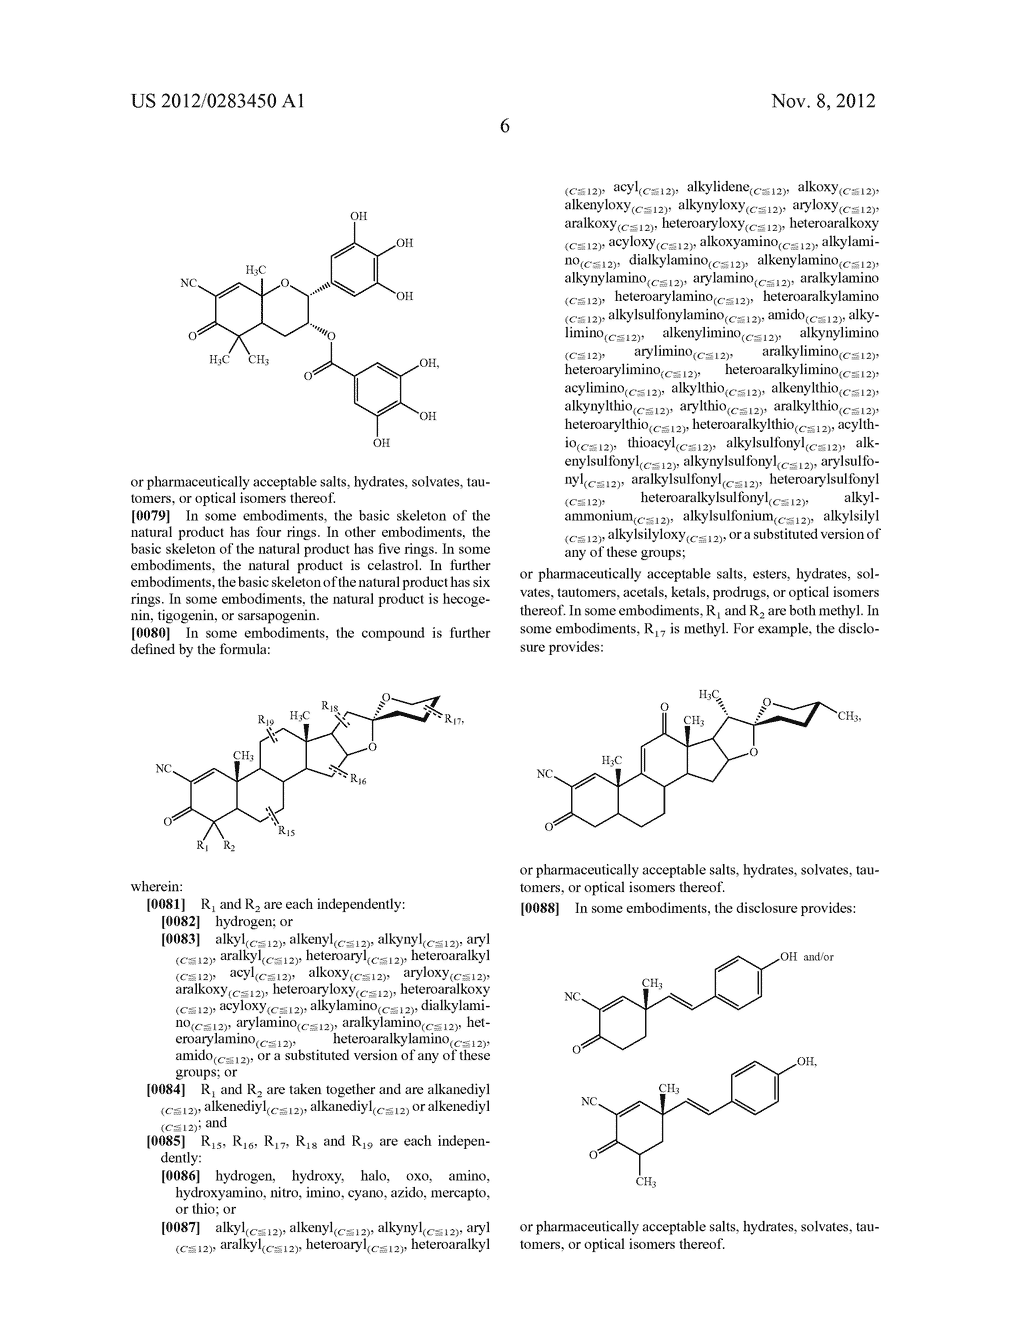 COMPOUNDS INCLUDING AN ANTI-INFLAMMATORY PHARMACORE AND METHODS OF USE - diagram, schematic, and image 31